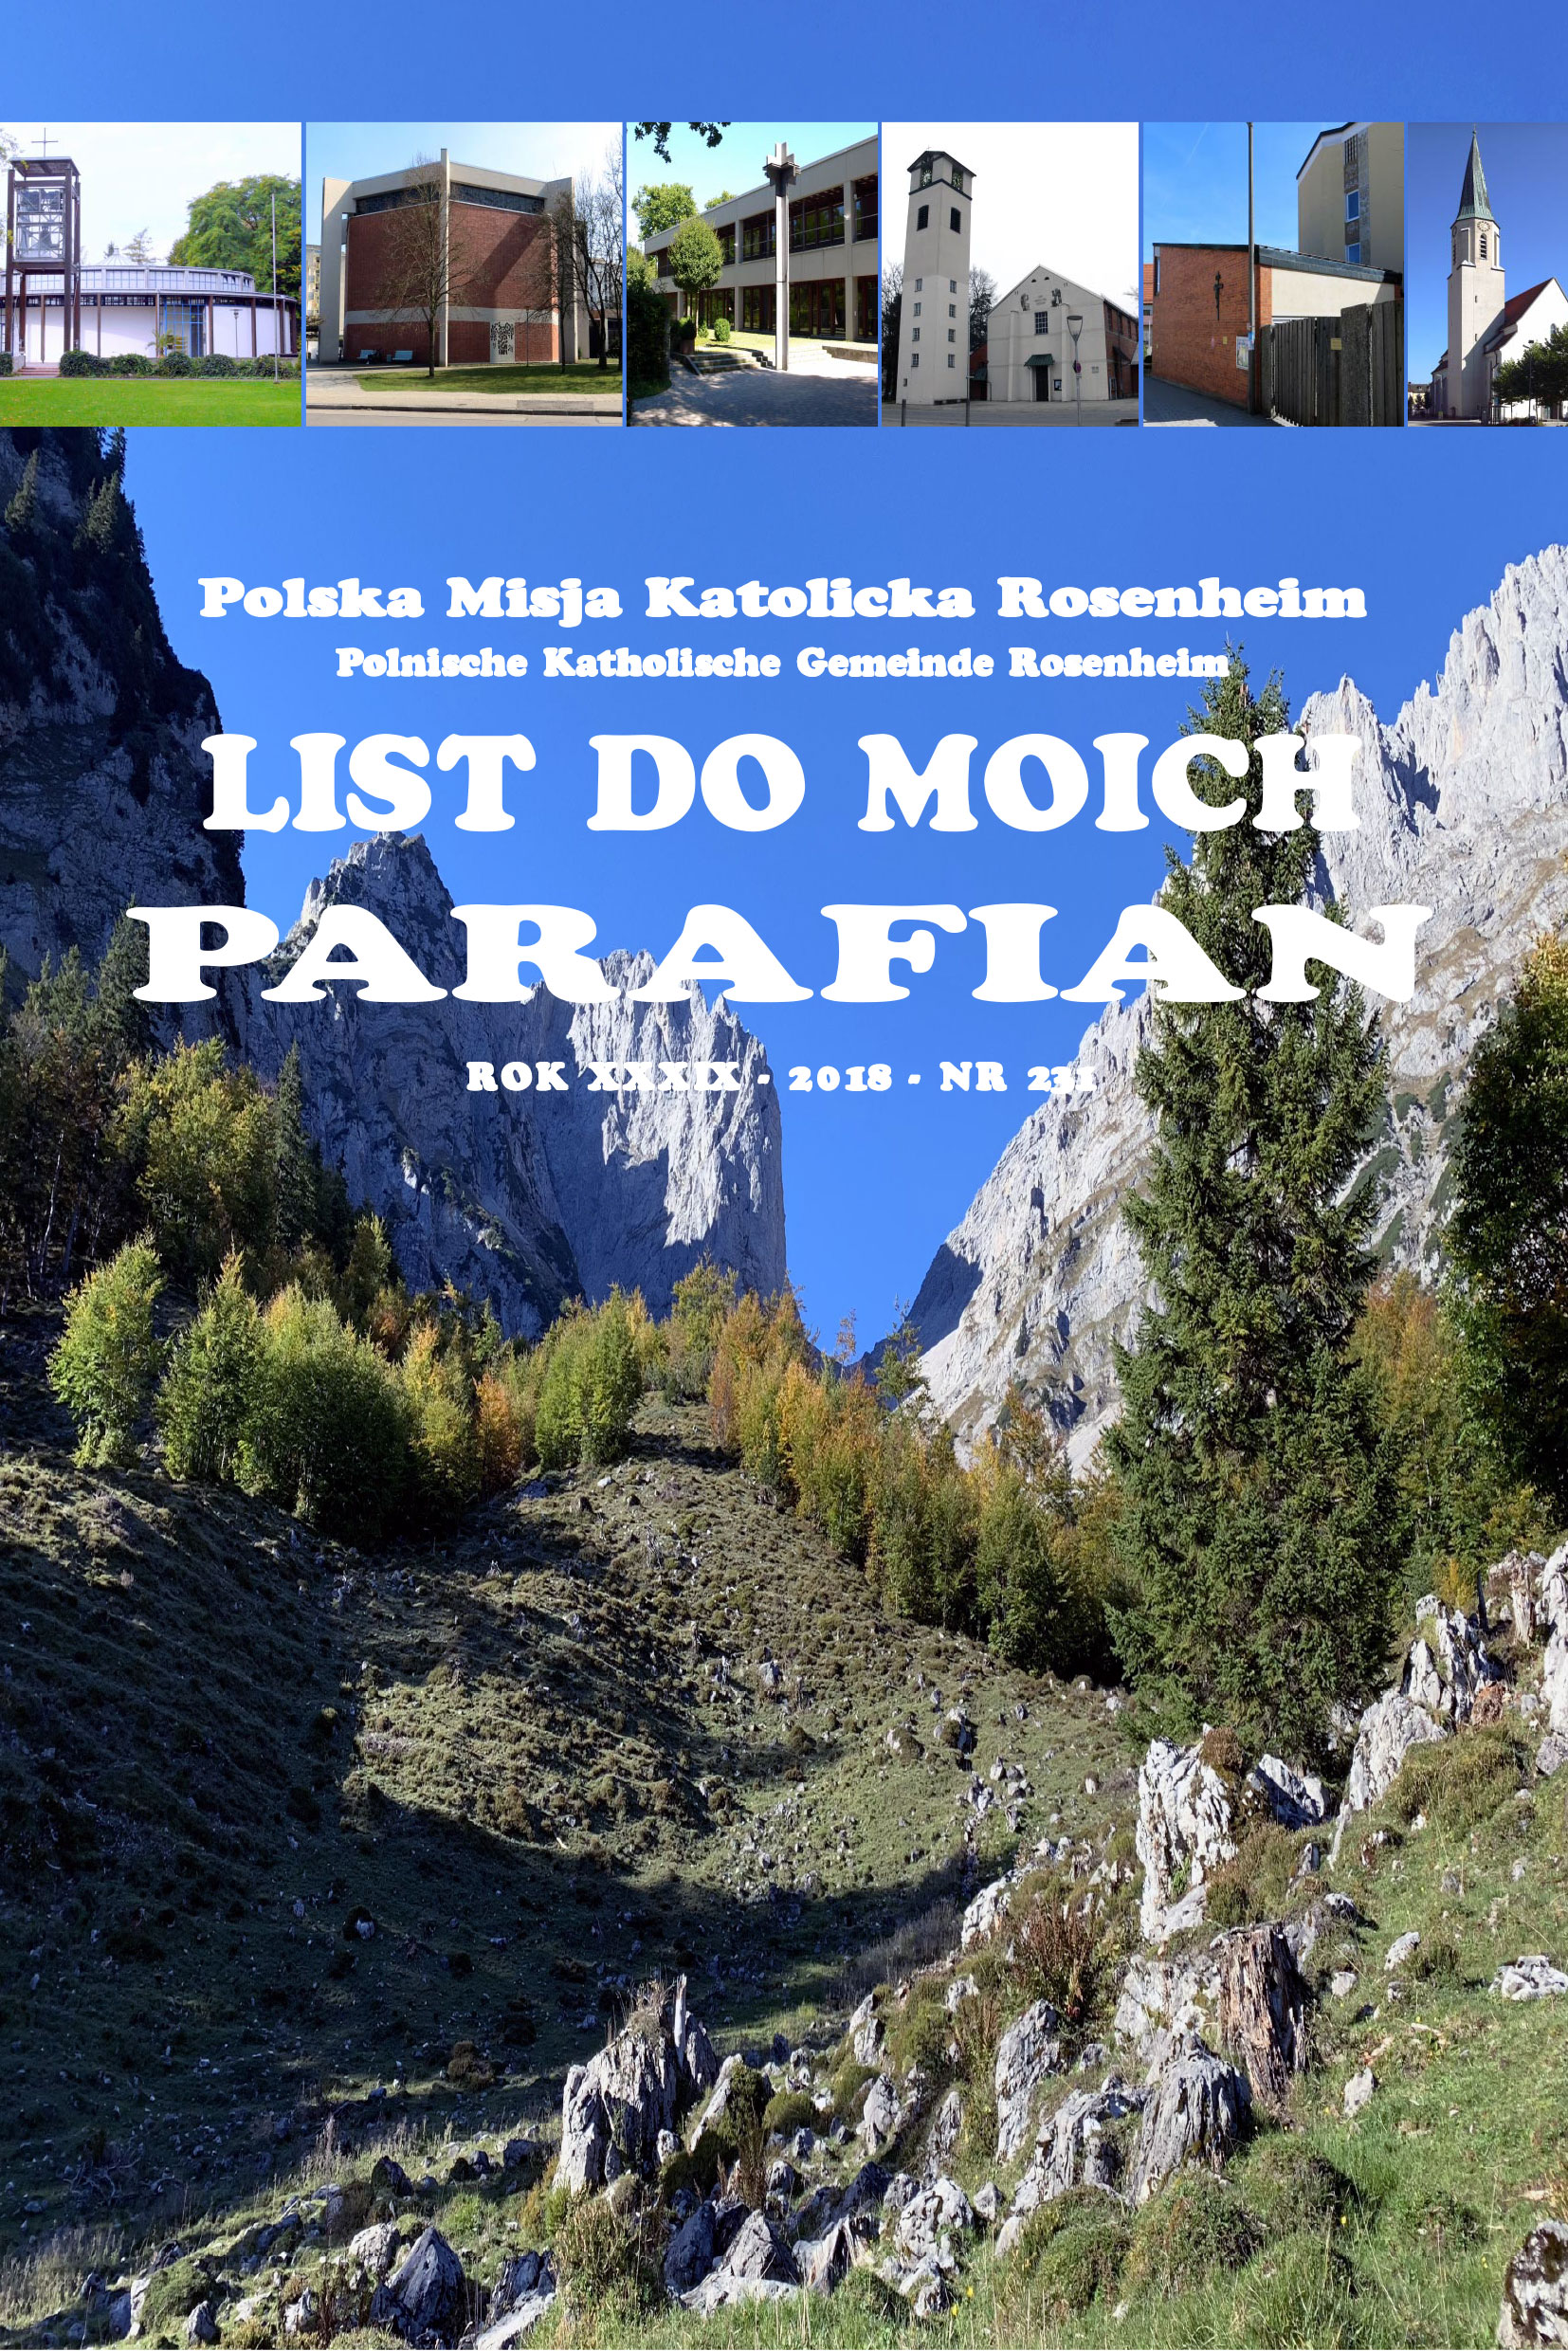 List do moich parafian Nr 231